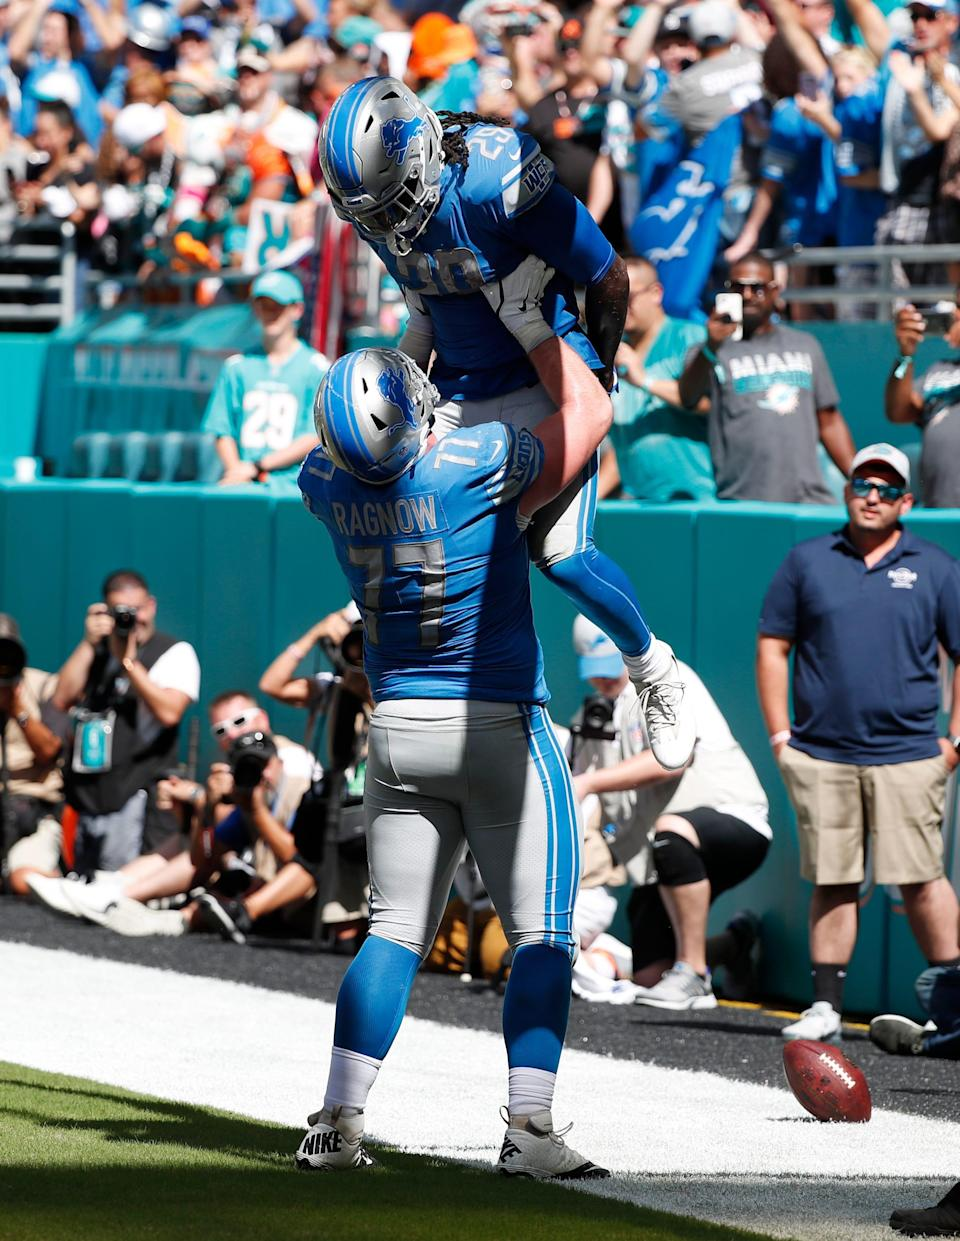 Lions offensive guard Frank Ragnow lifts running back LeGarrette Blount after Blount scored a touchdown, during the first half of the Lions' 32-21 win on Sunday, Oct. 21, 2018, in Miami Gardens, Fla.